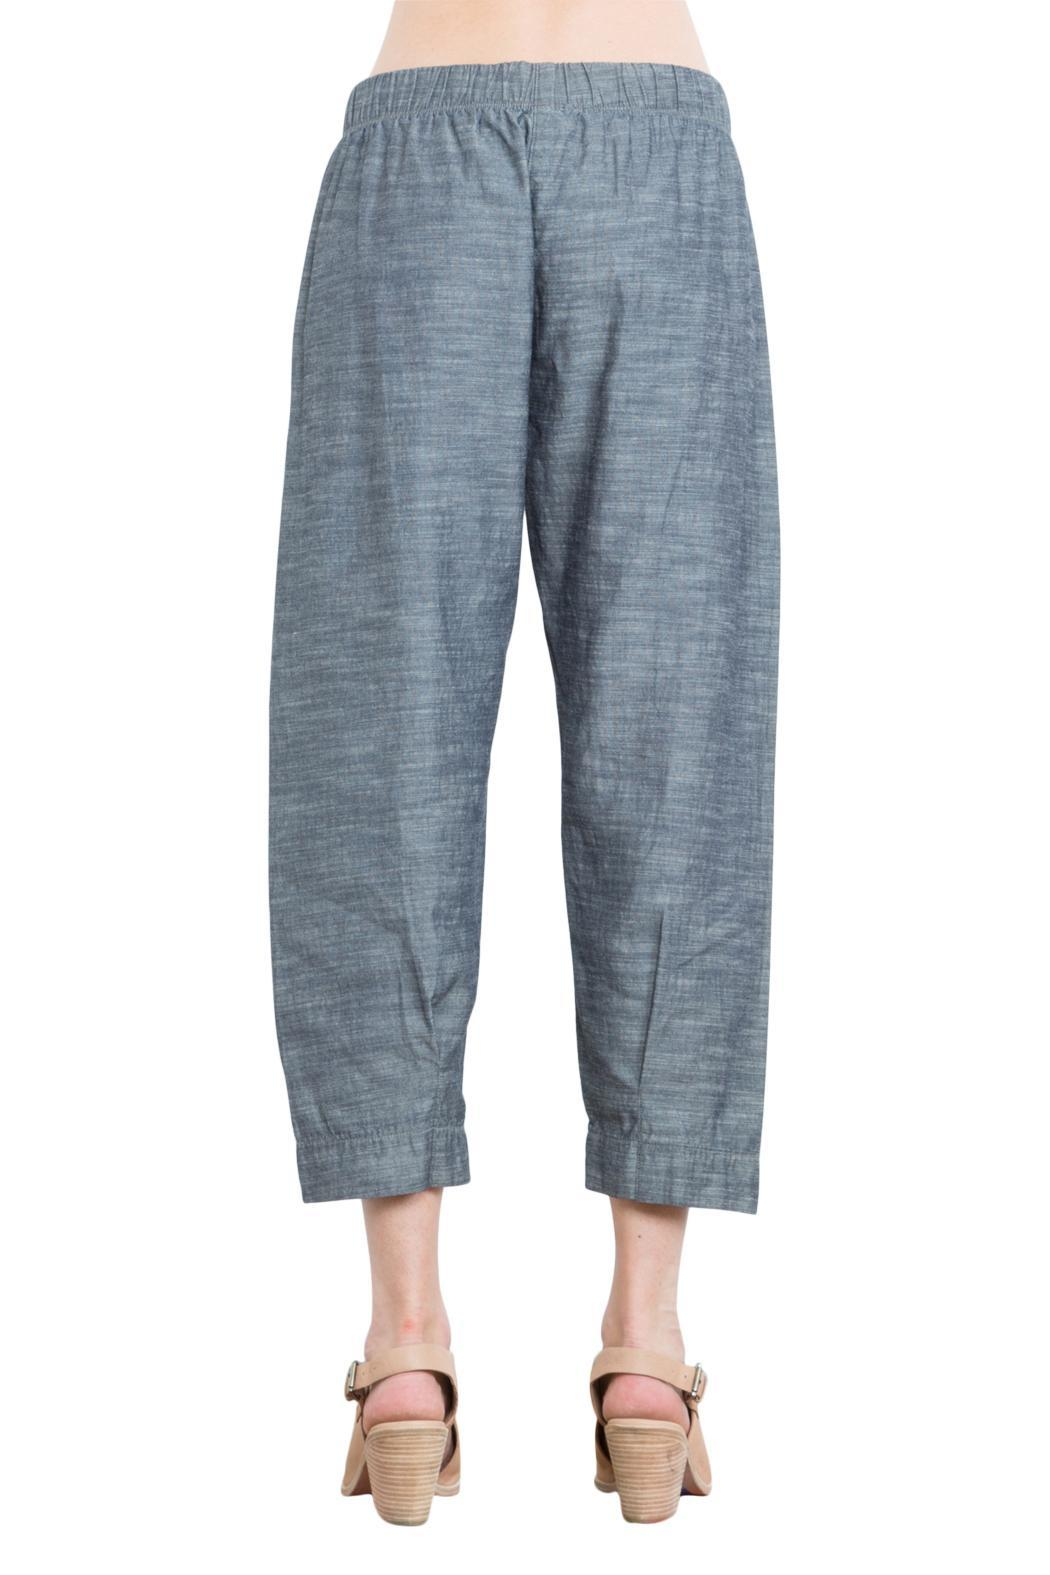 Prairie Underground Chambray Cropped Jogger - Side Cropped Image